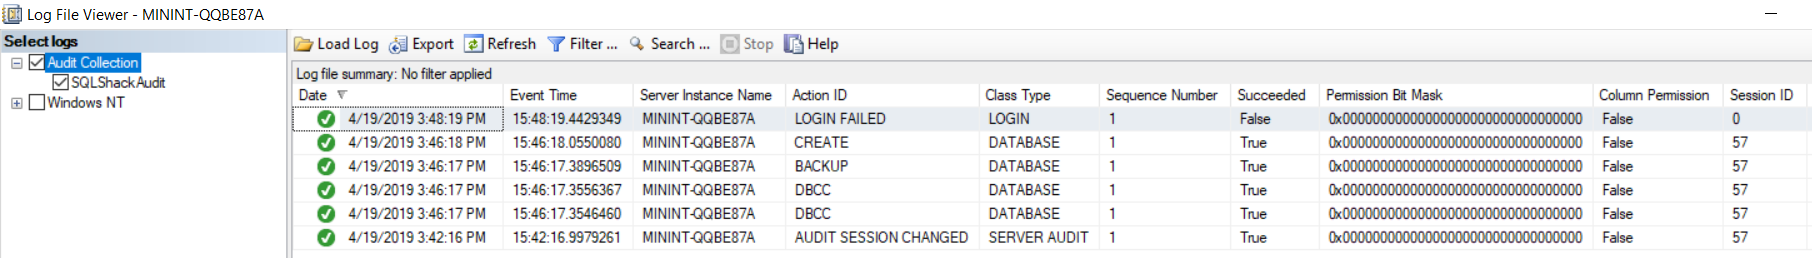 SQL Server Audit Log File Viewer 1